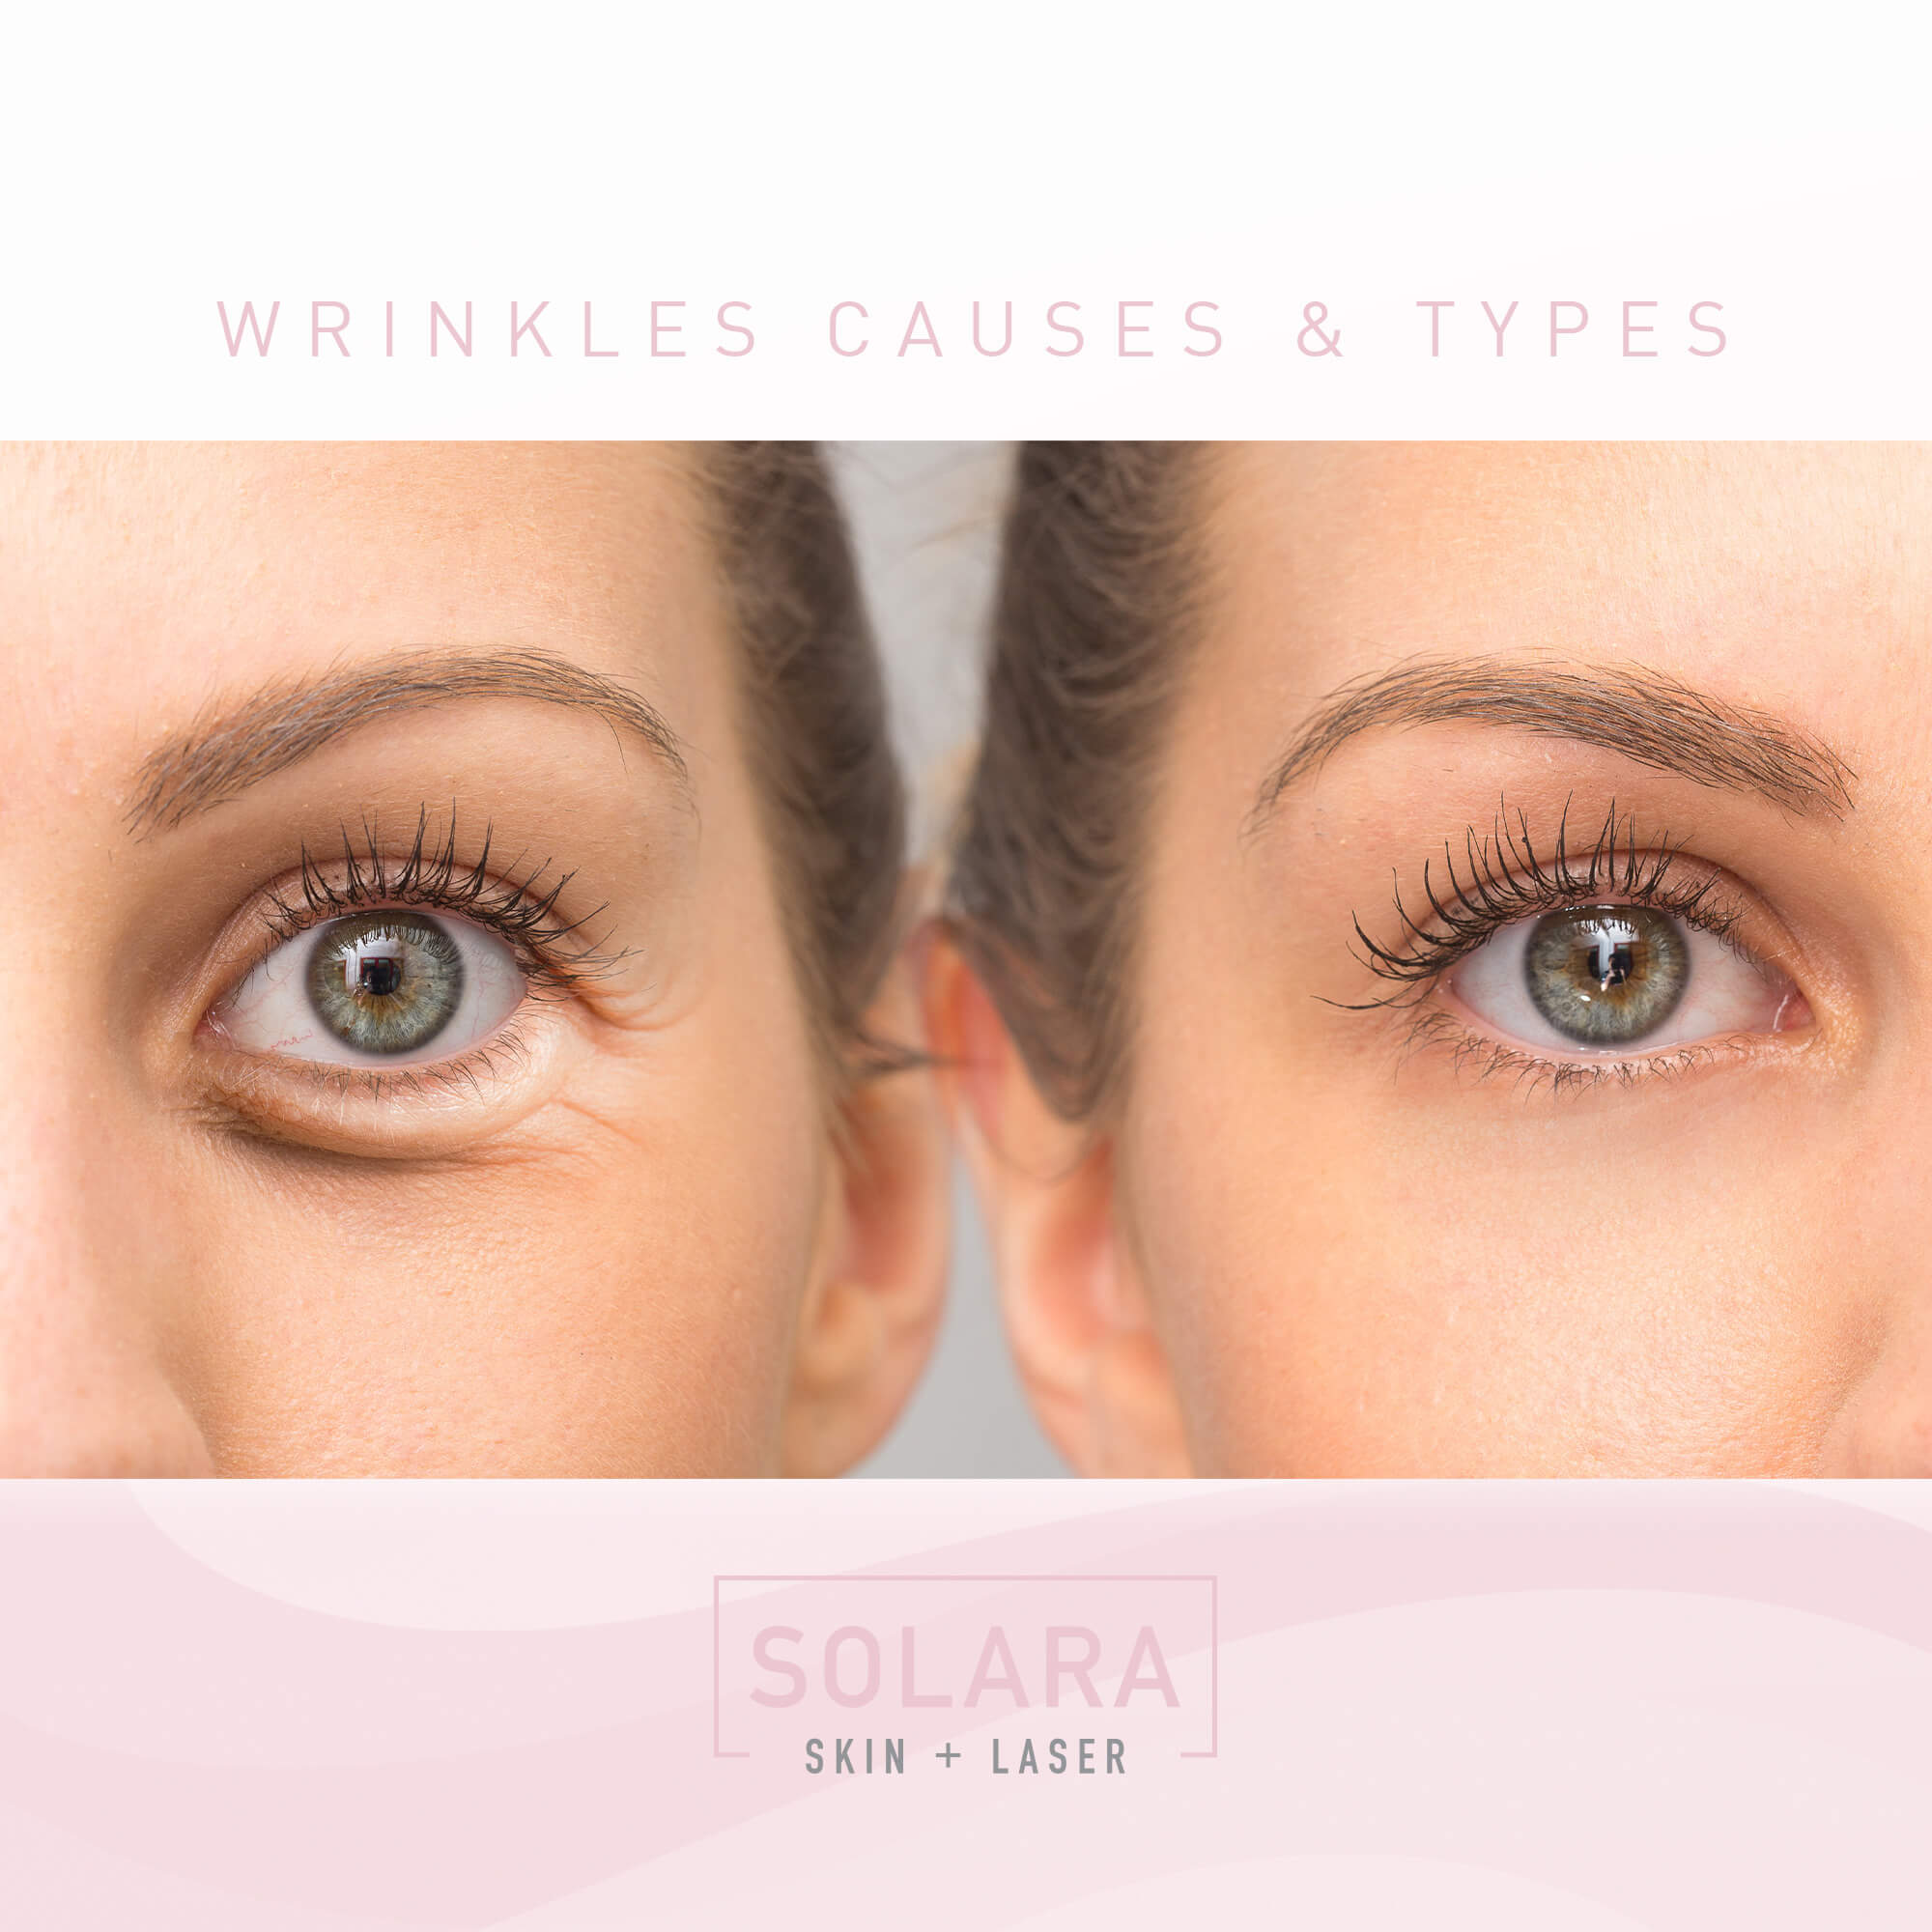 Wrinkles Causes and Types